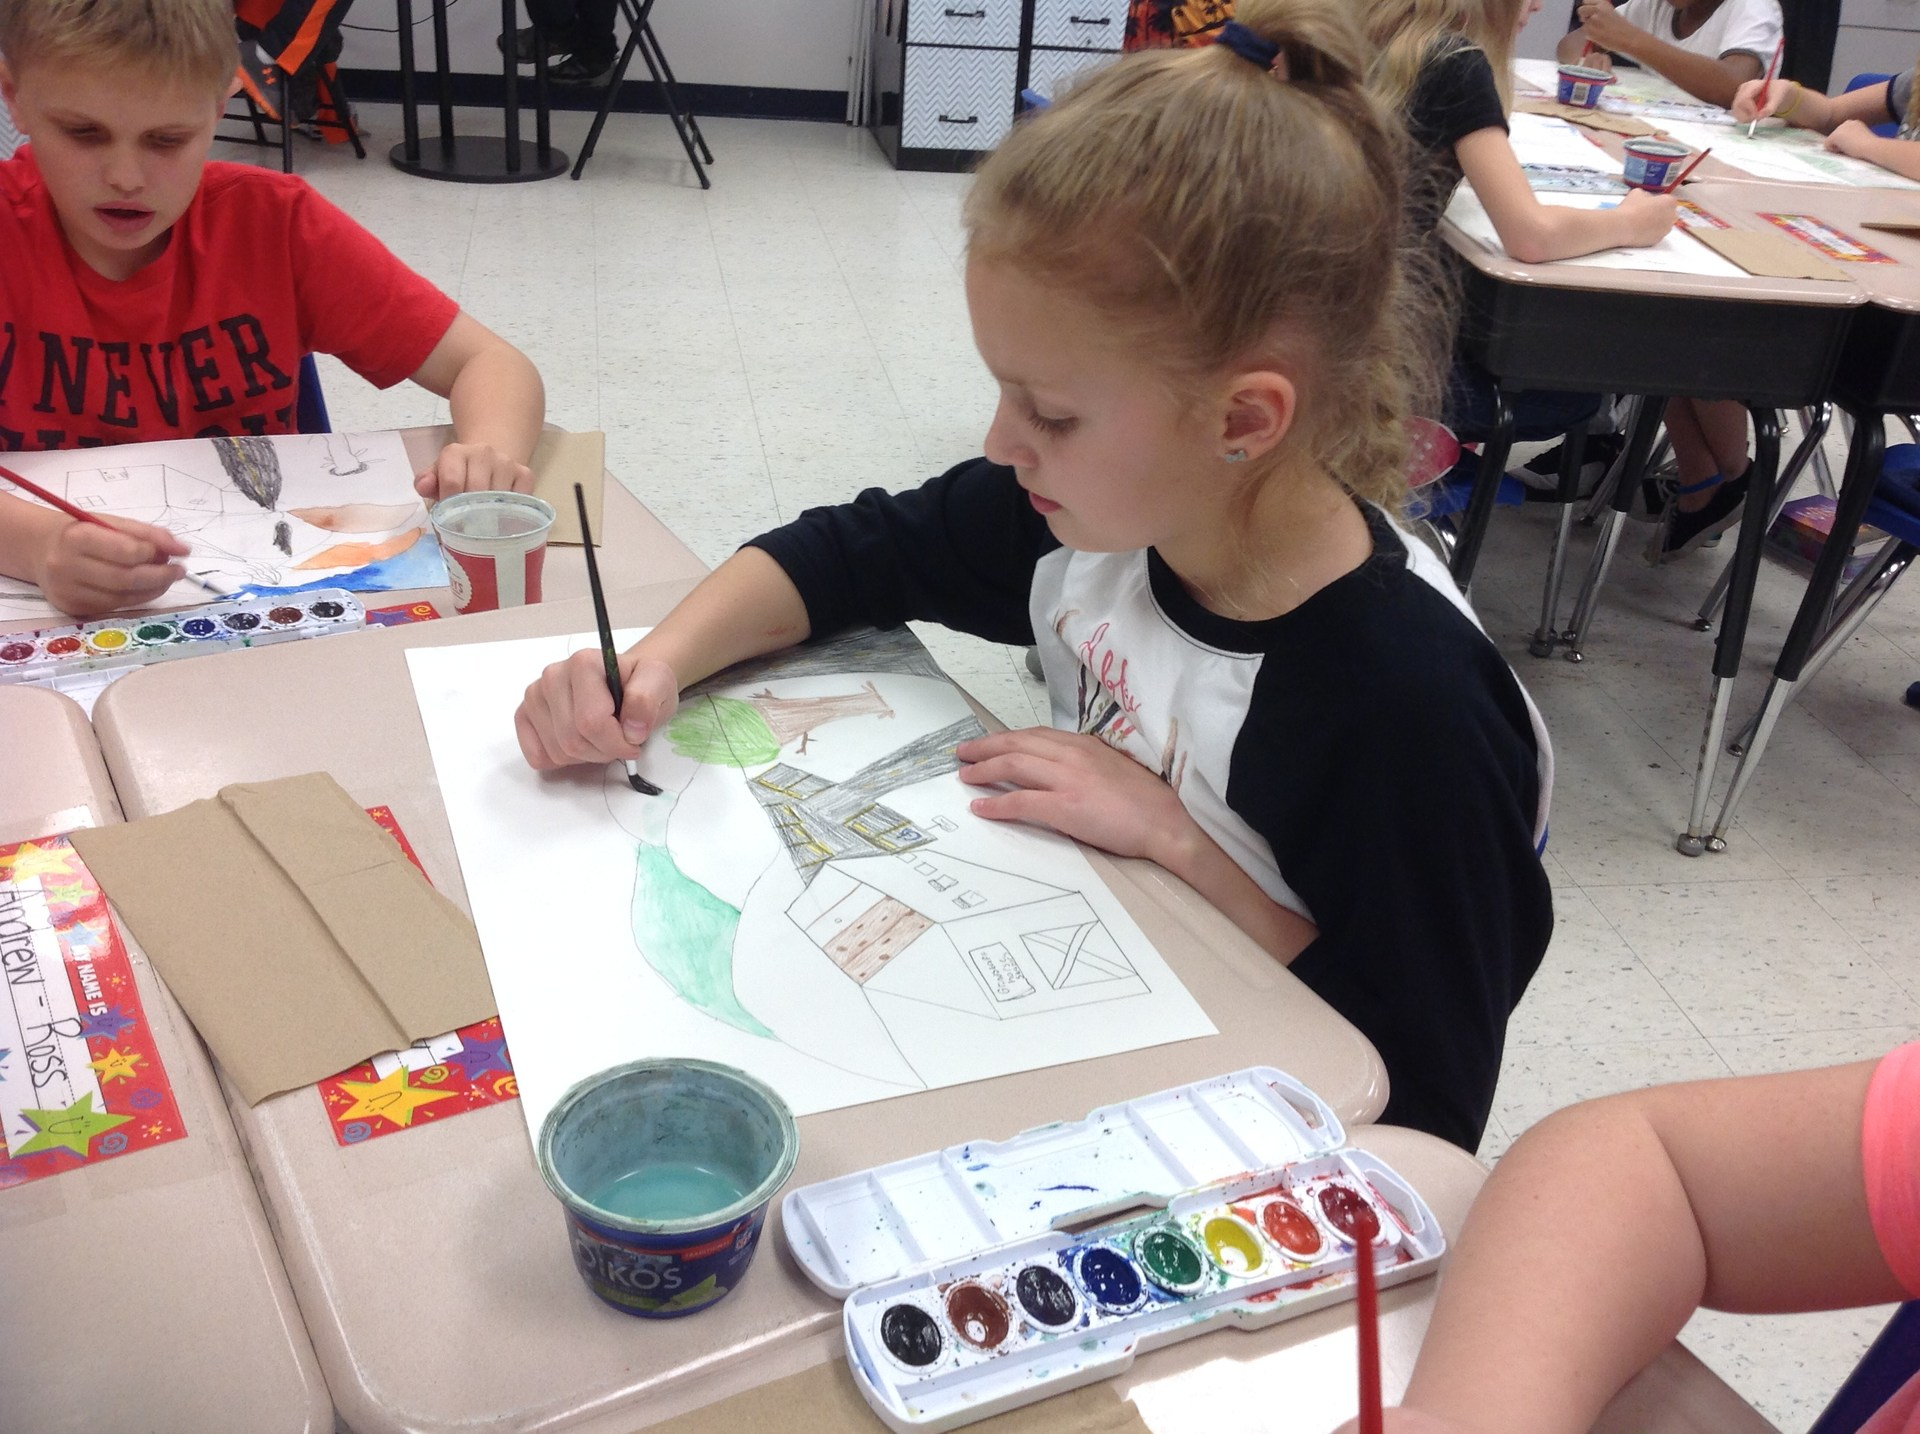 Abby working hard on her painting.